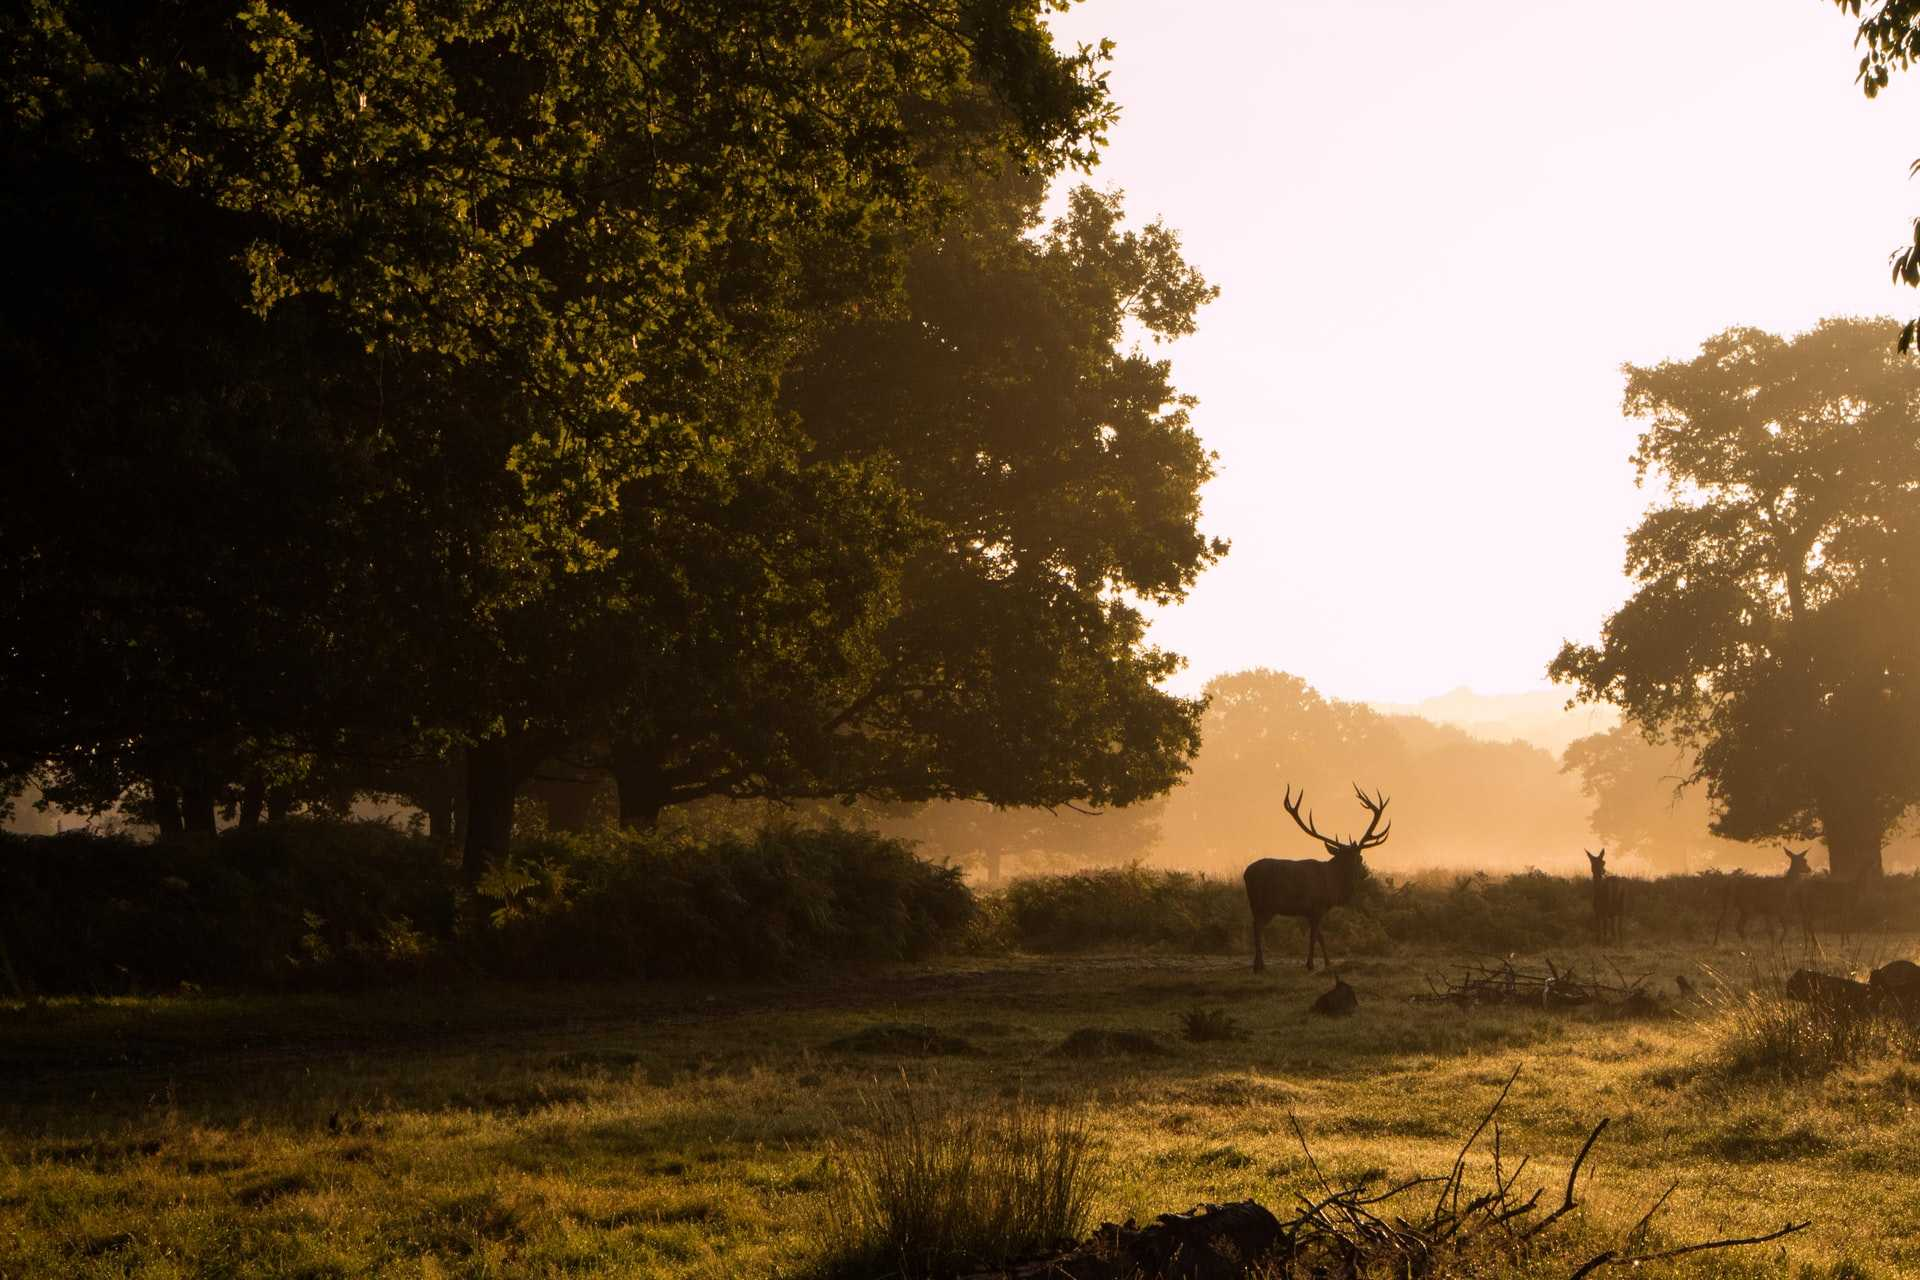 deer-walking-around-park-at-golden-hour-sunset-in-richmond-park-most-beautiful-parks-in-london